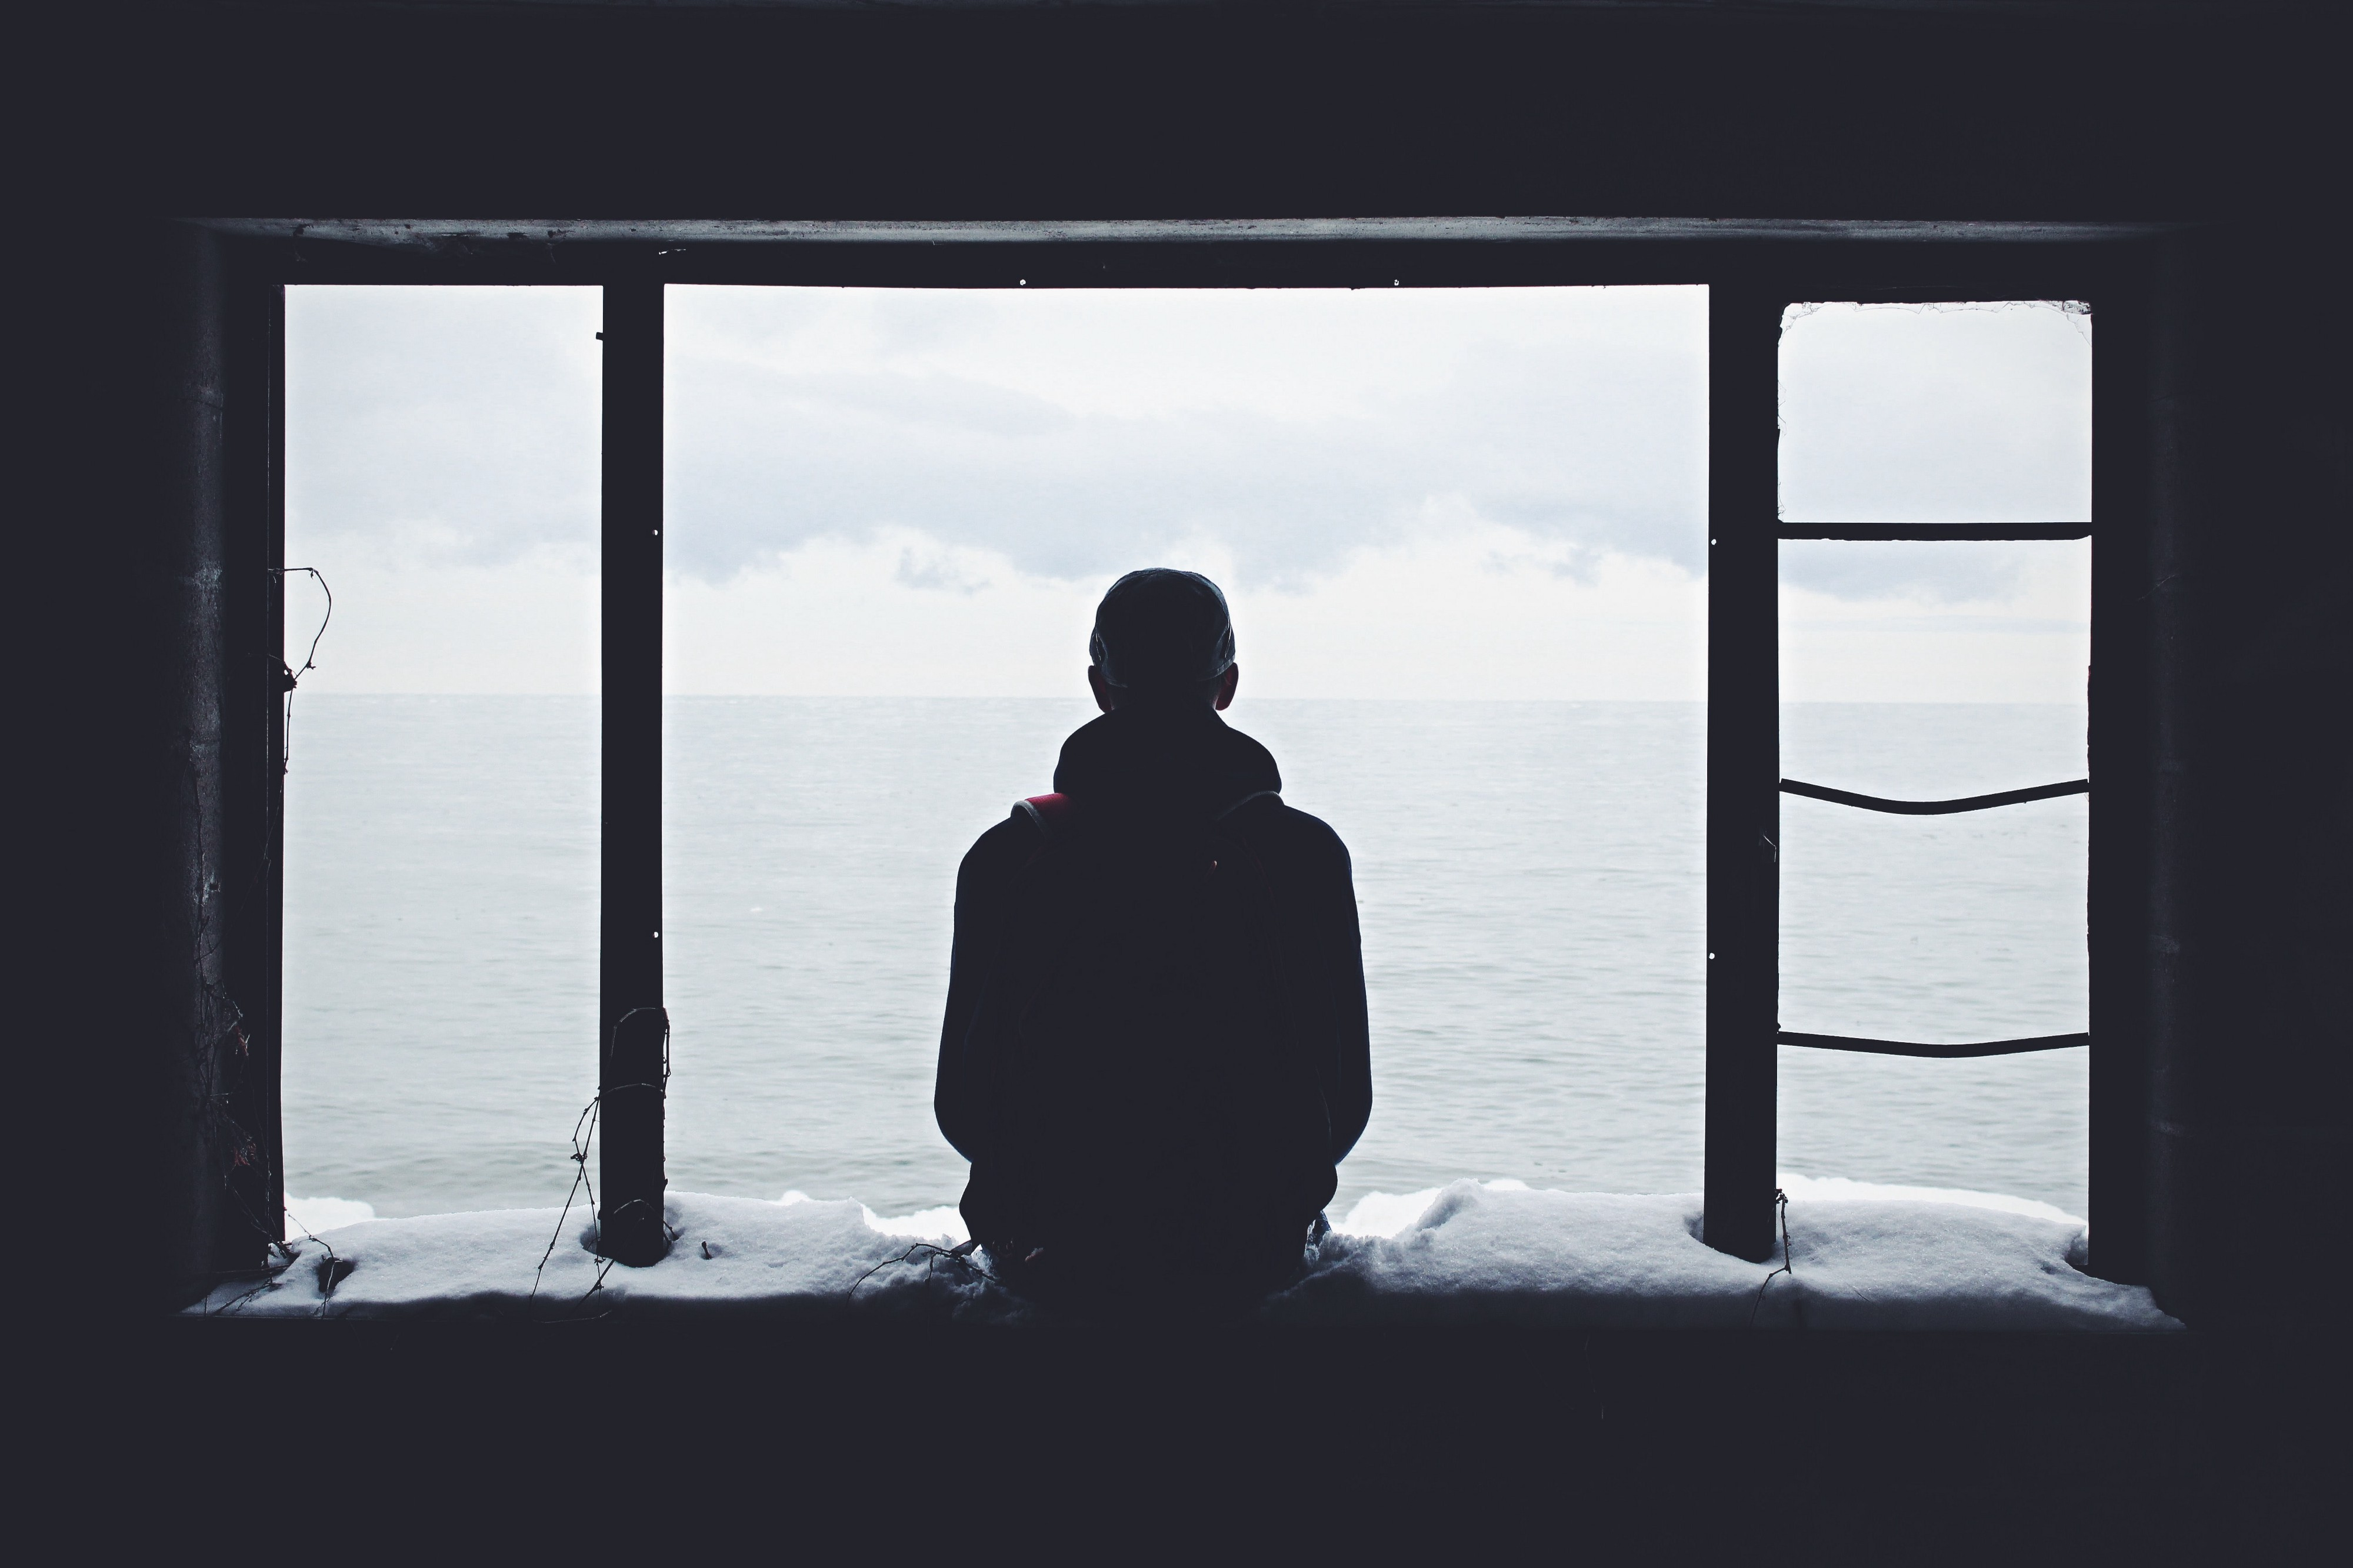 man sitting along looking out window